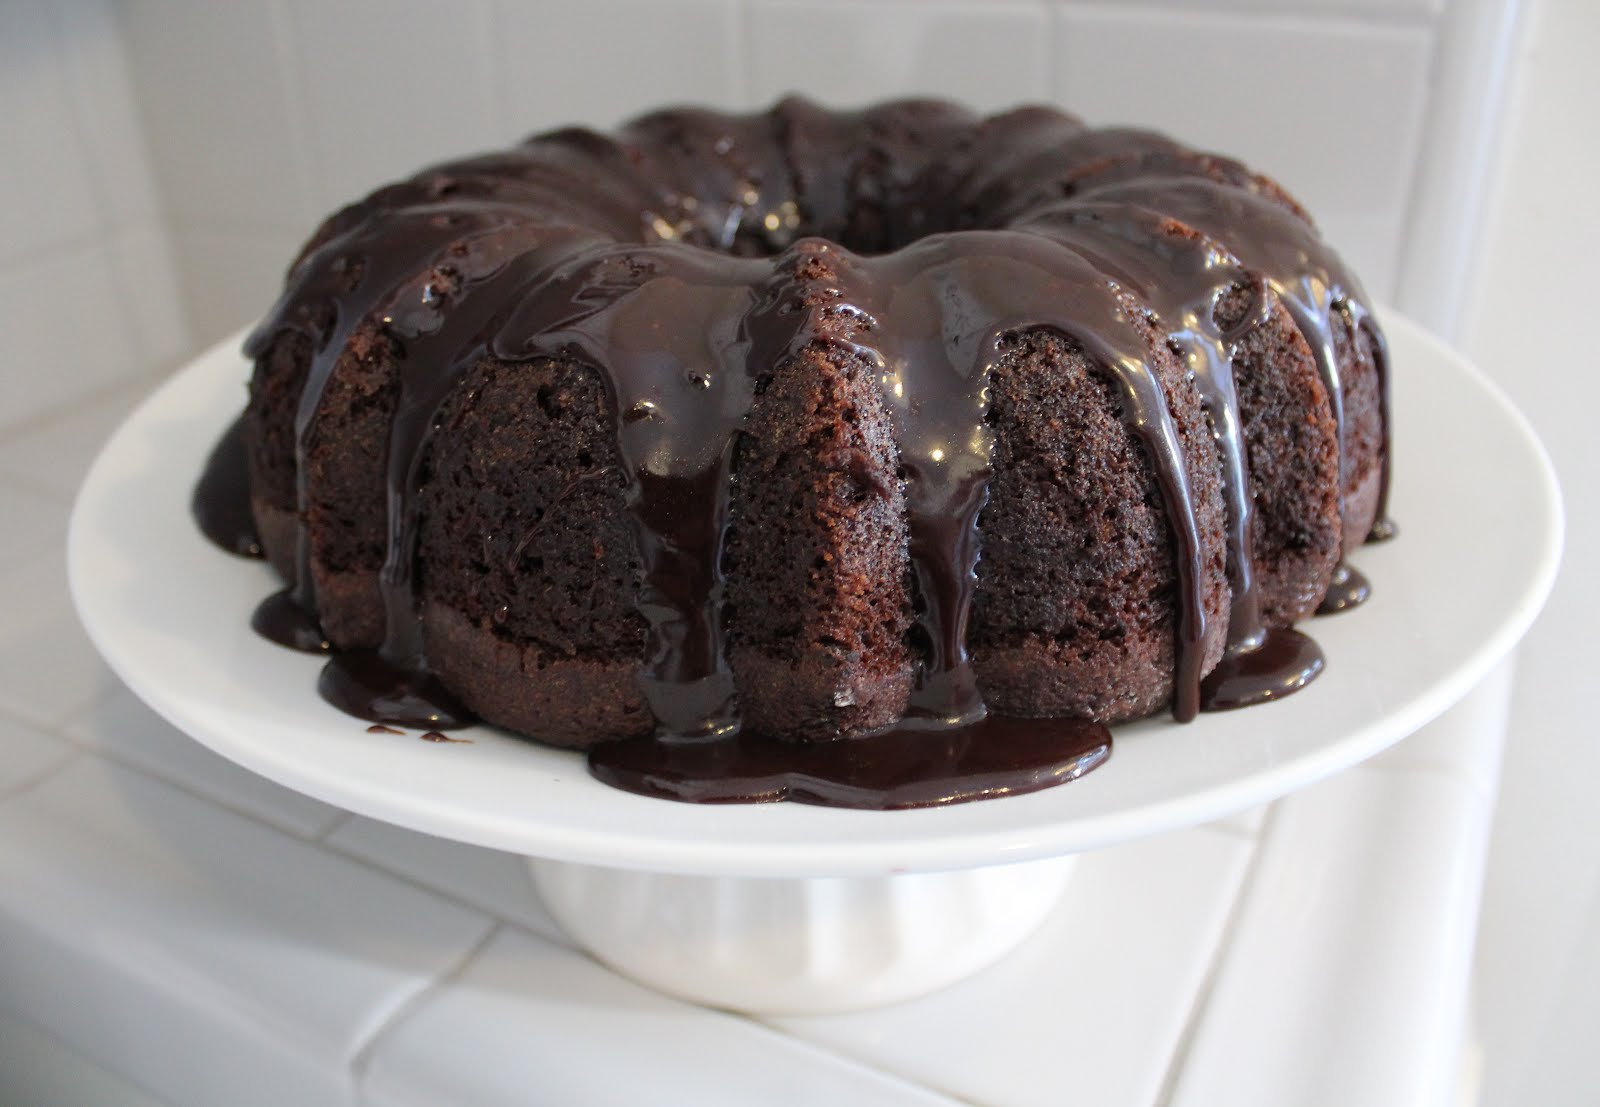 The BEST EVER Chocolate Bundt Cake and Chocolate Icing! Our family ...